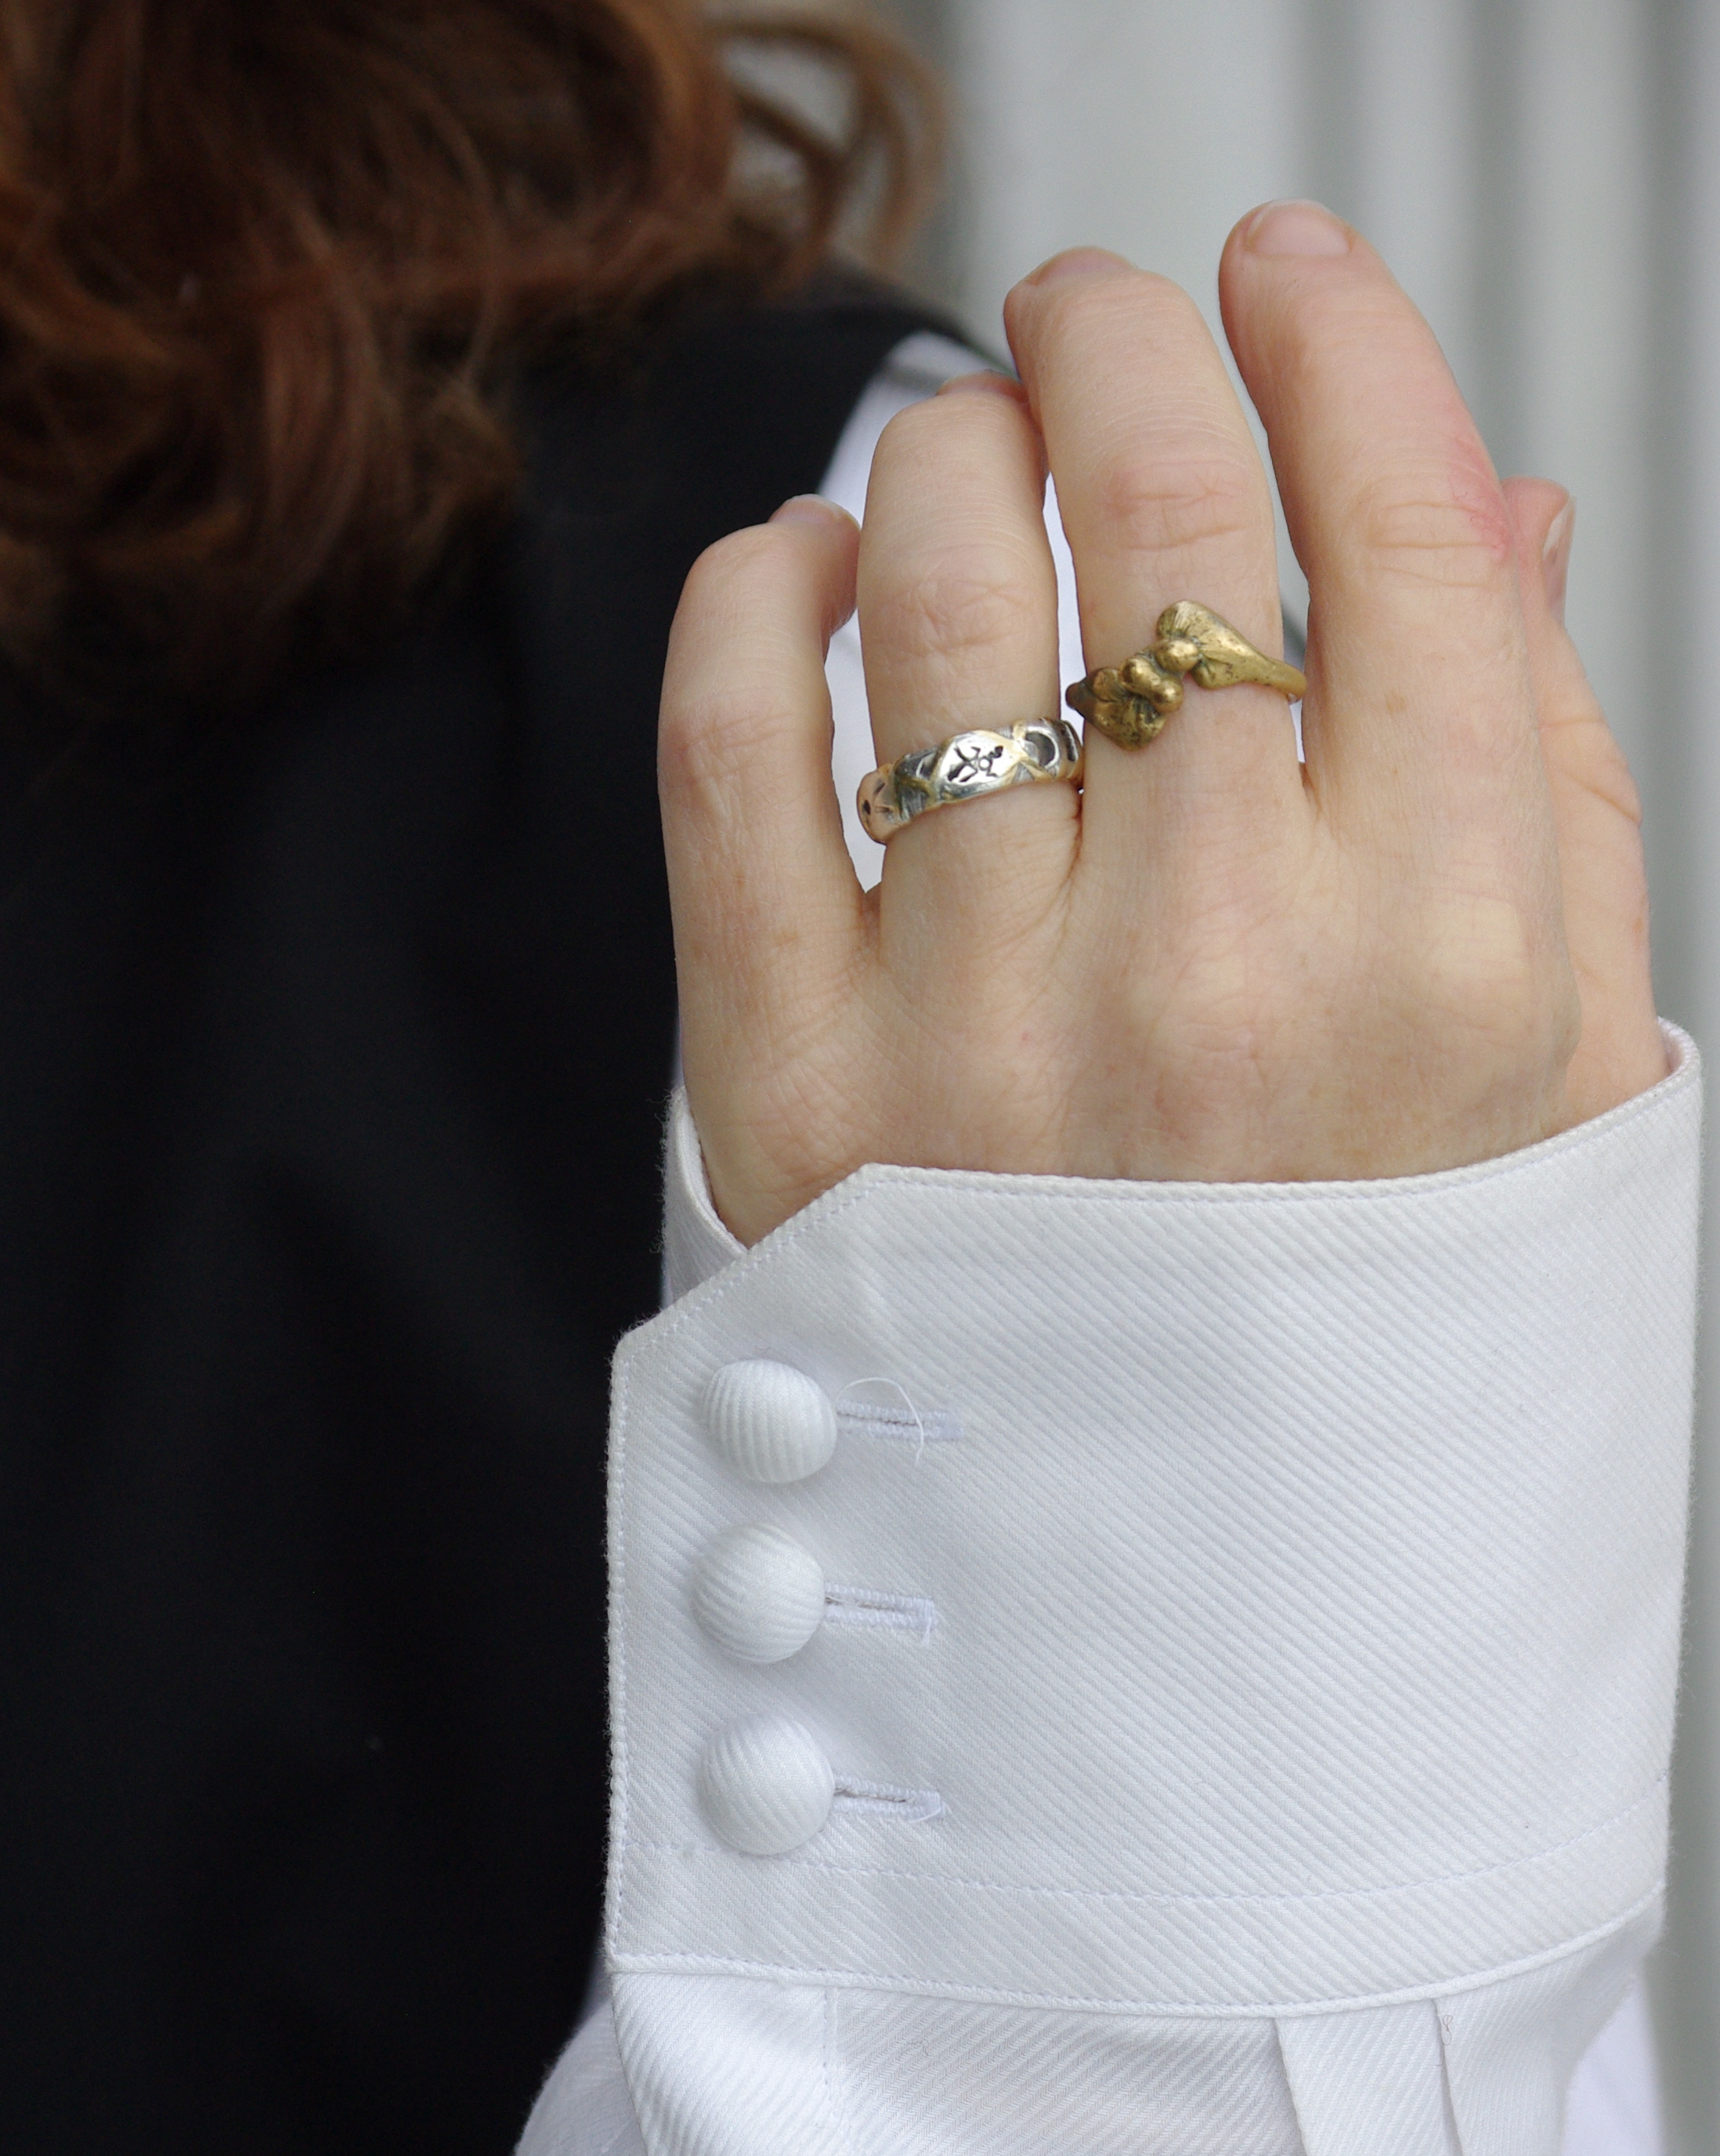 Wear Silver Gold Rings Together